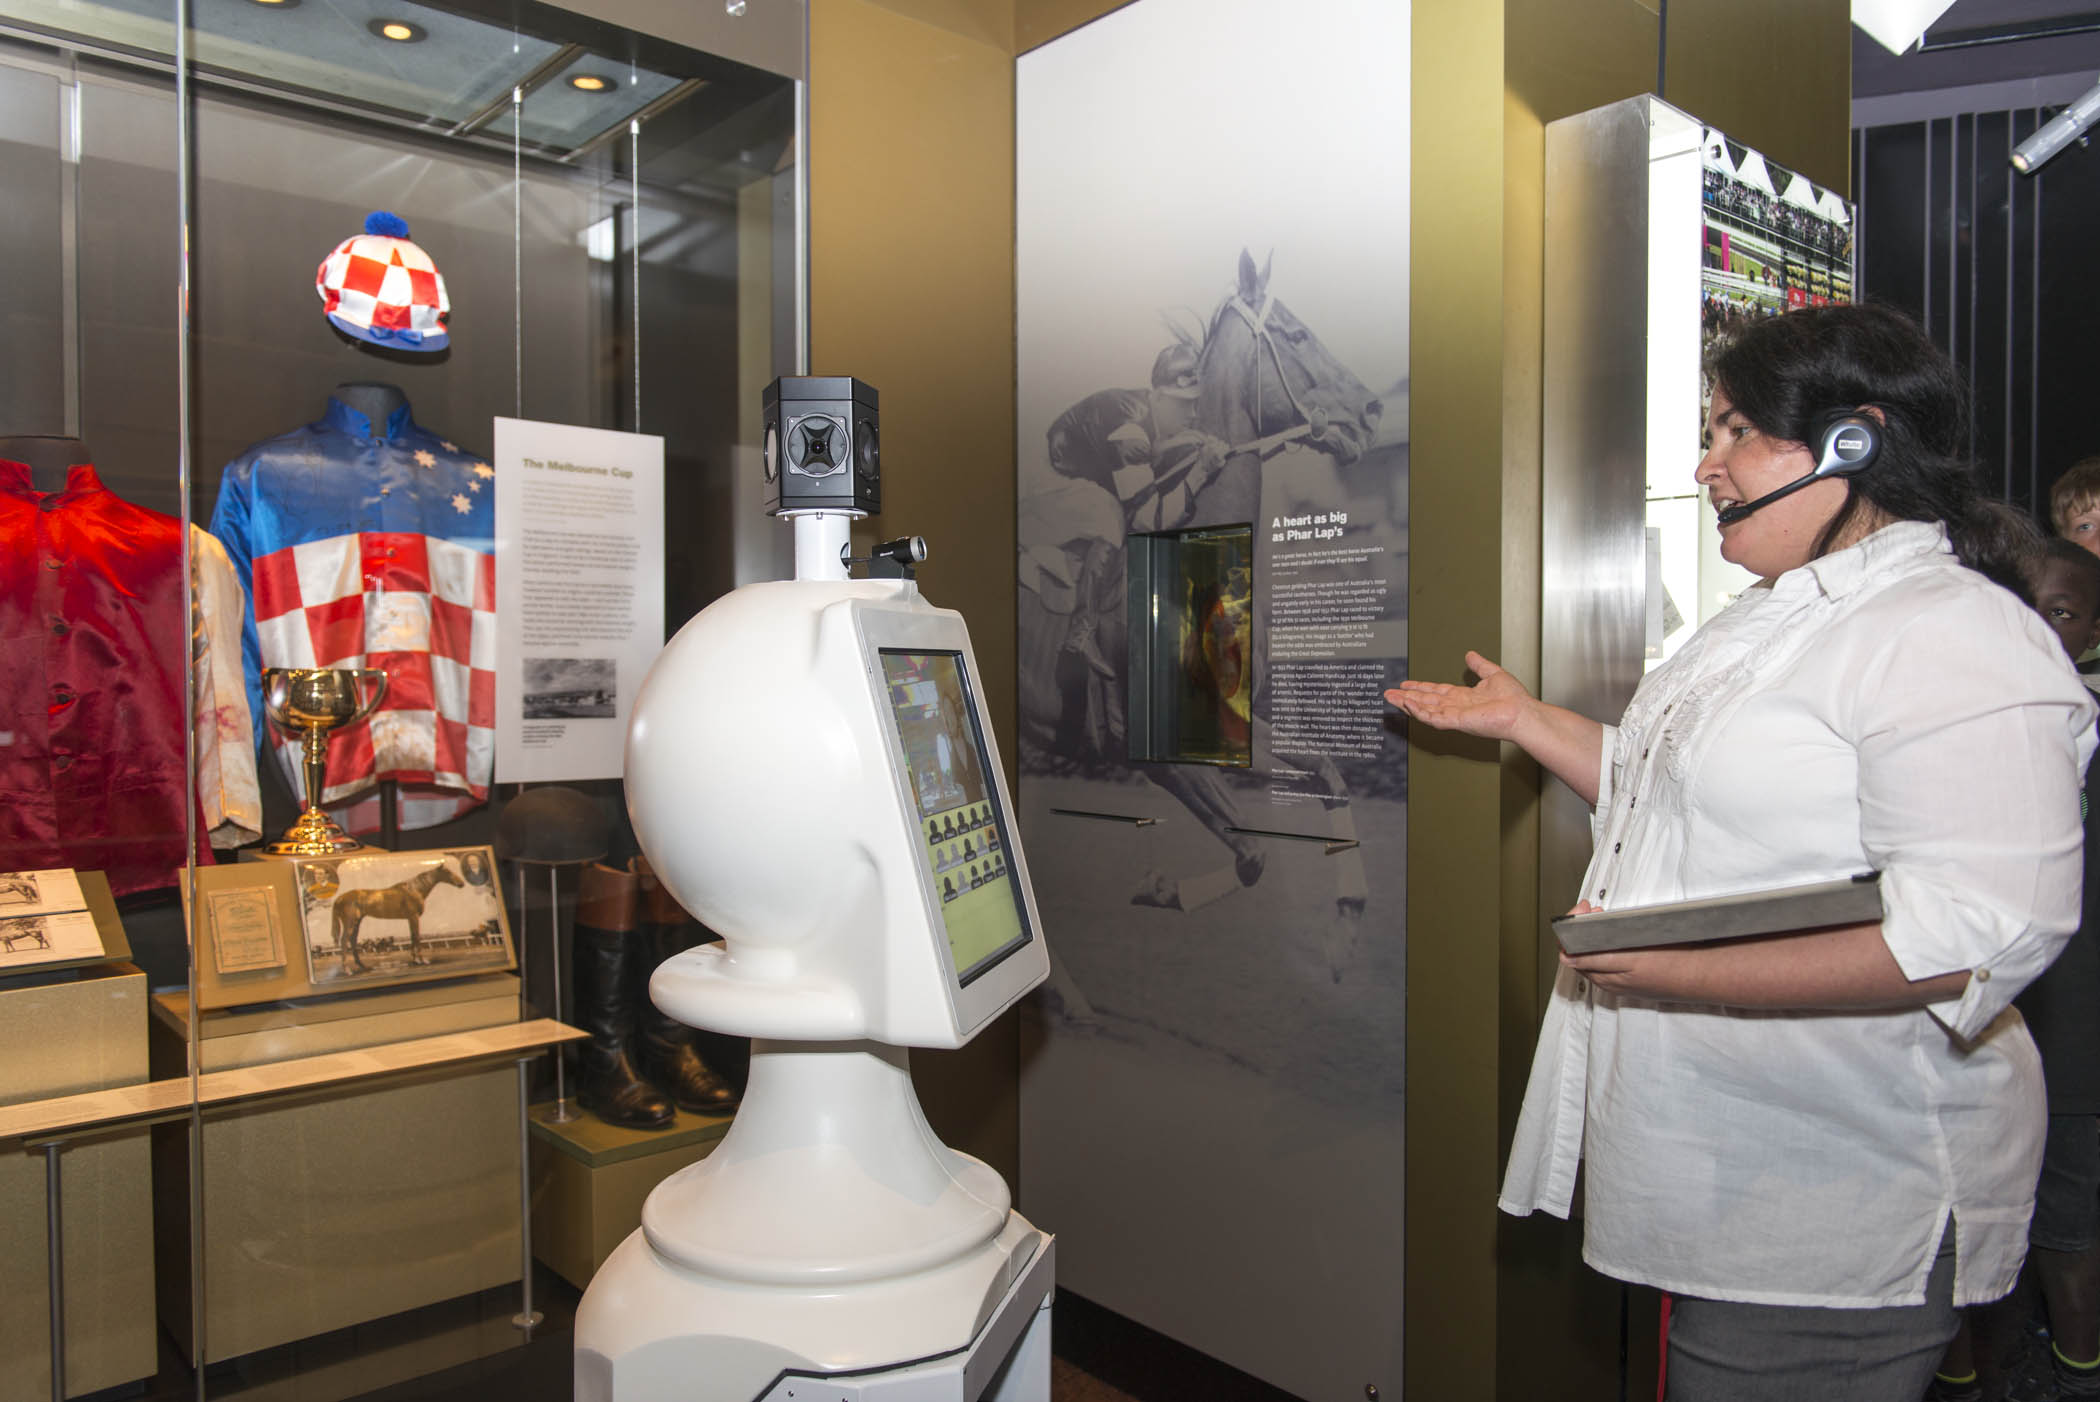 A guide from the National Museum of Australia uses the museum robot to show students Phar Lap's heart.